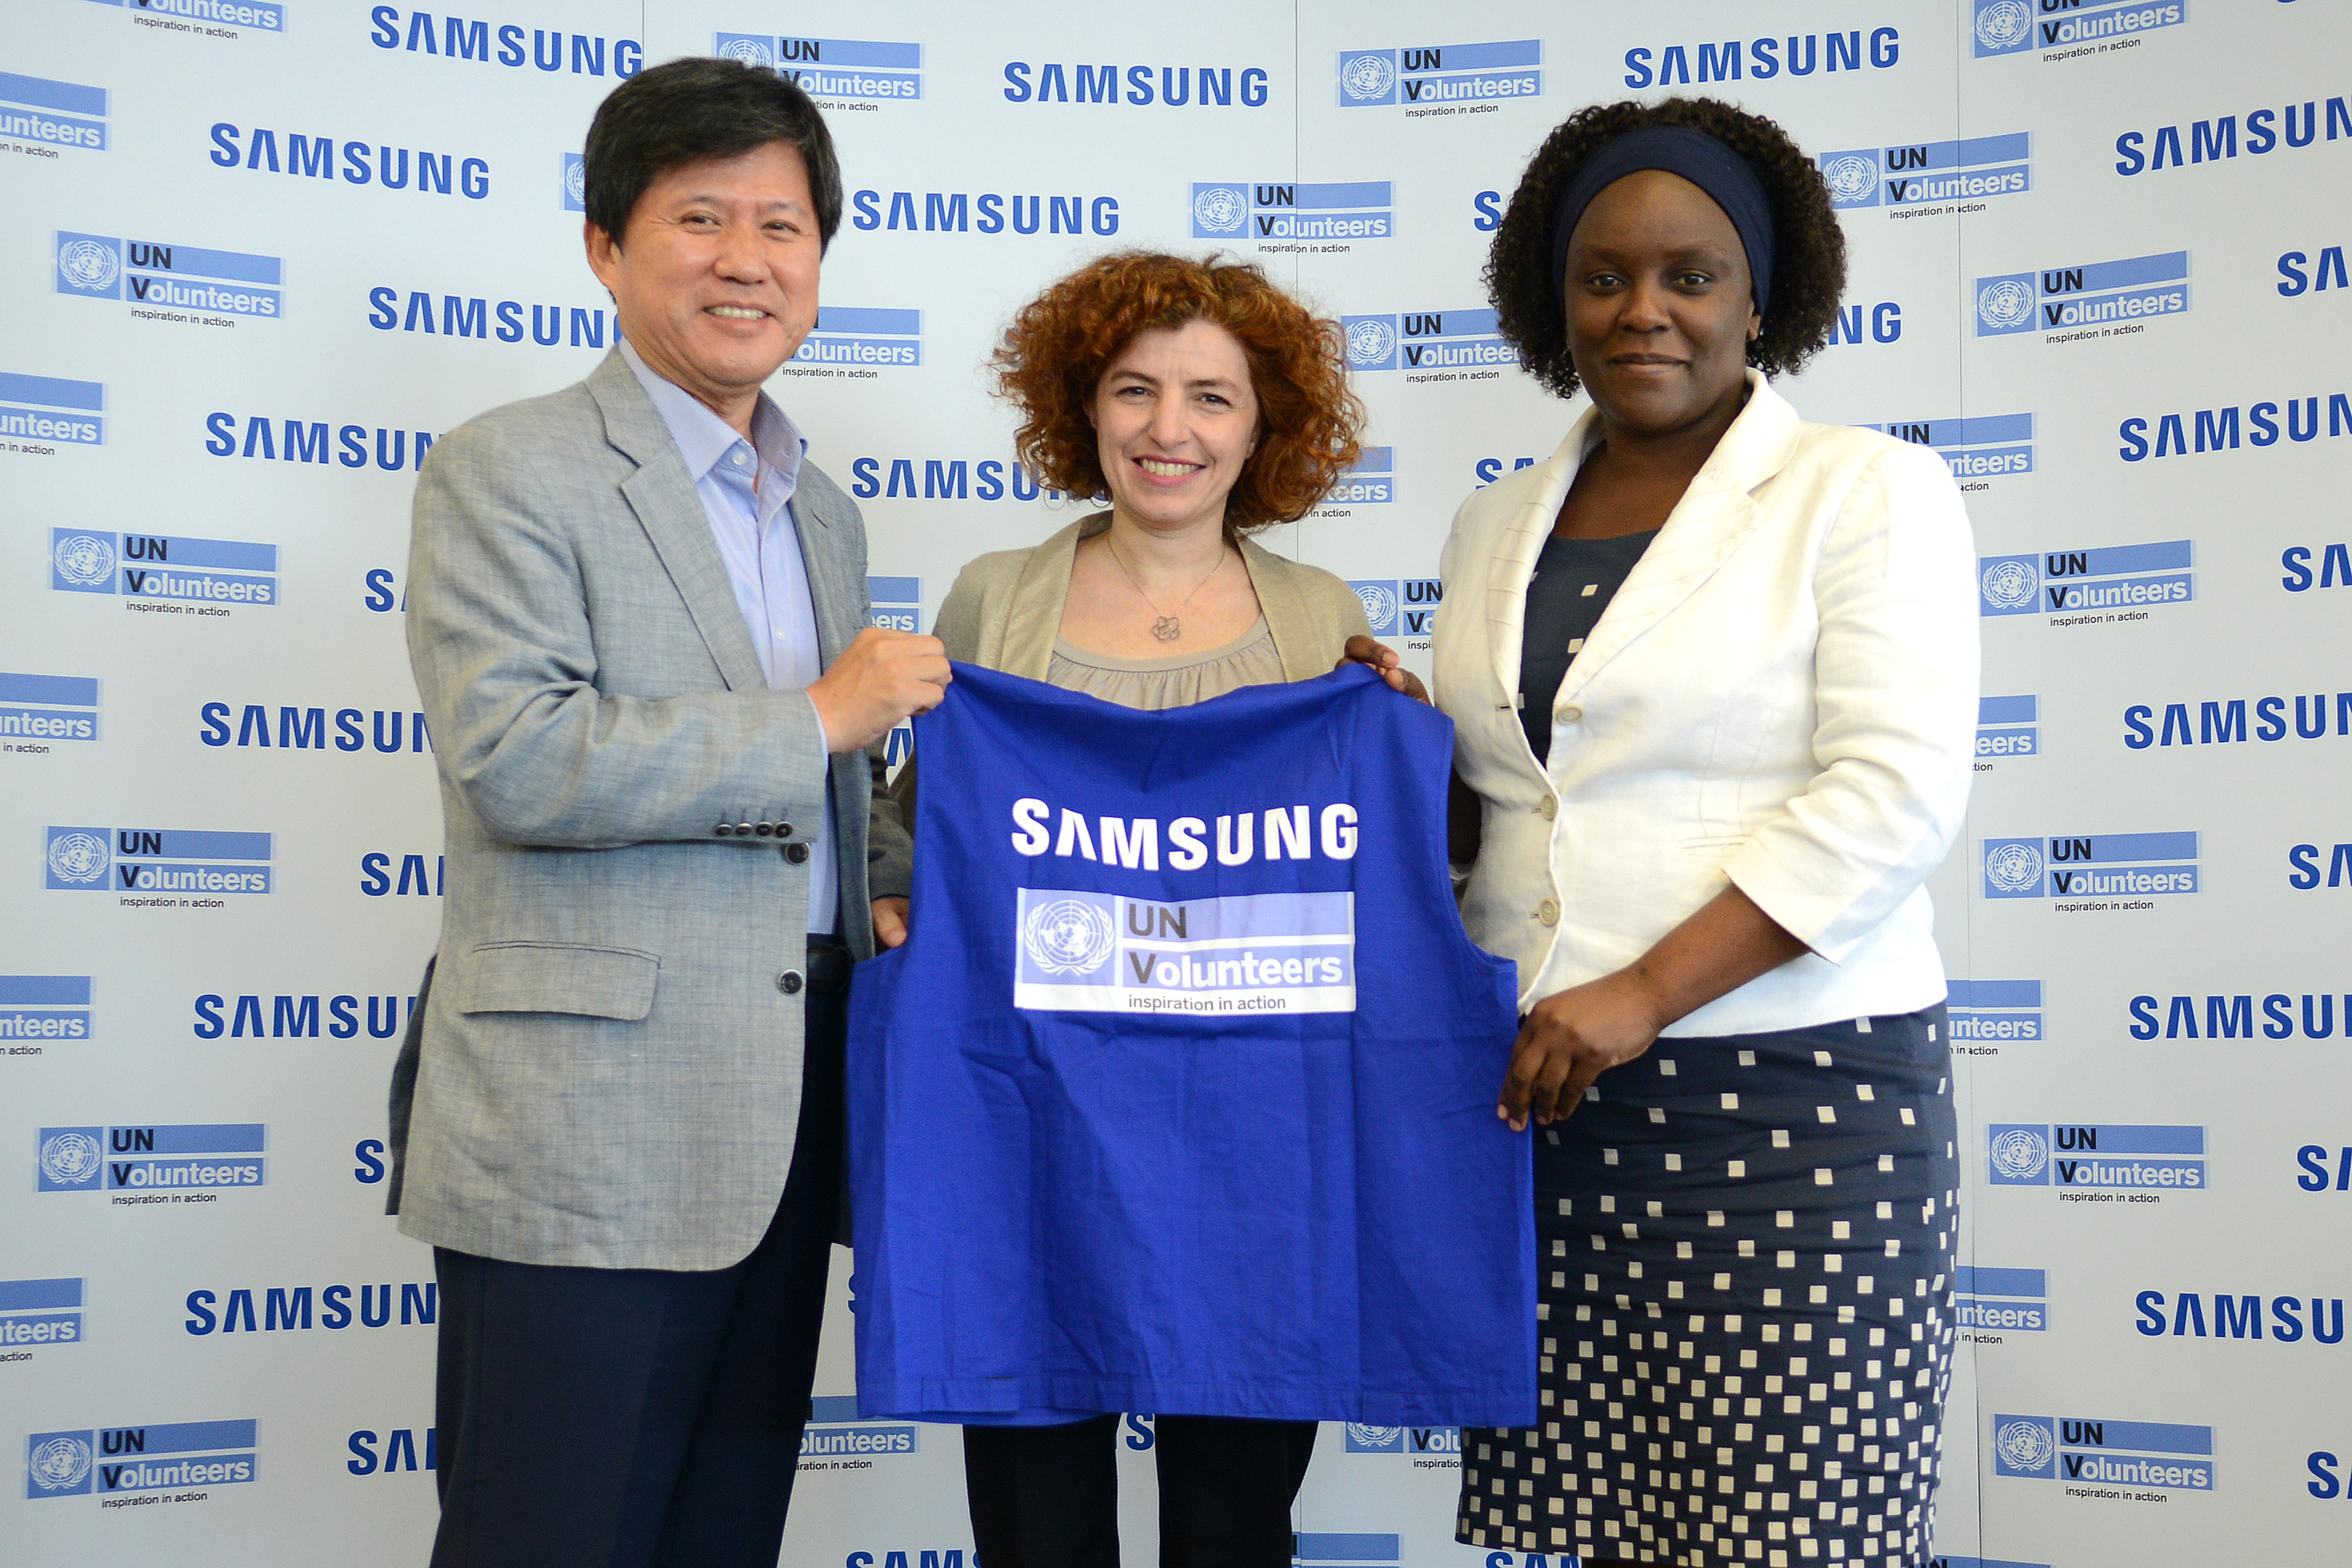 Samsung and UNV announce an innovative partnership to promote